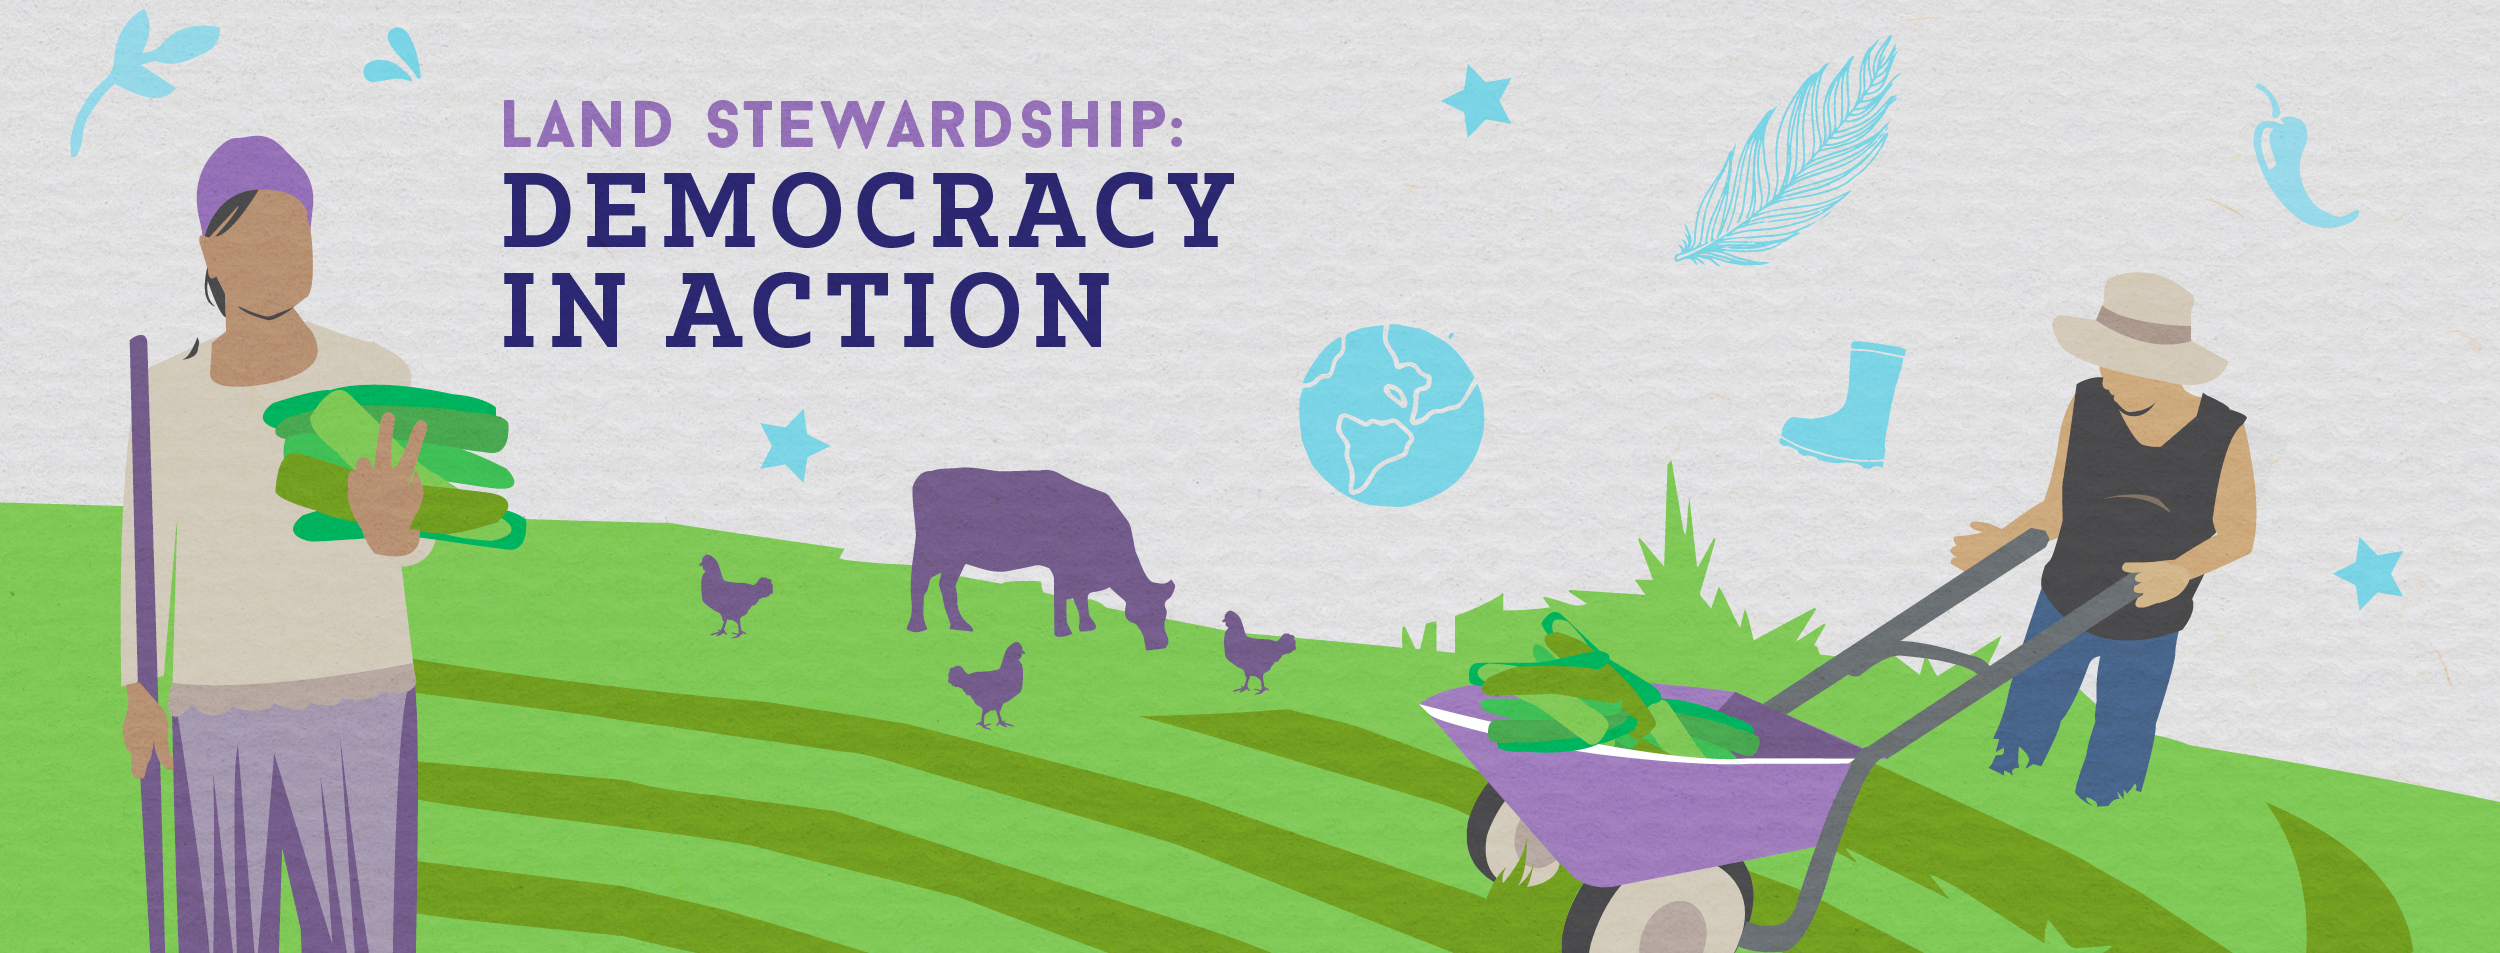 "Graphic showing a farm scene with text: ""Land Stewardship: Democracy in Action"""